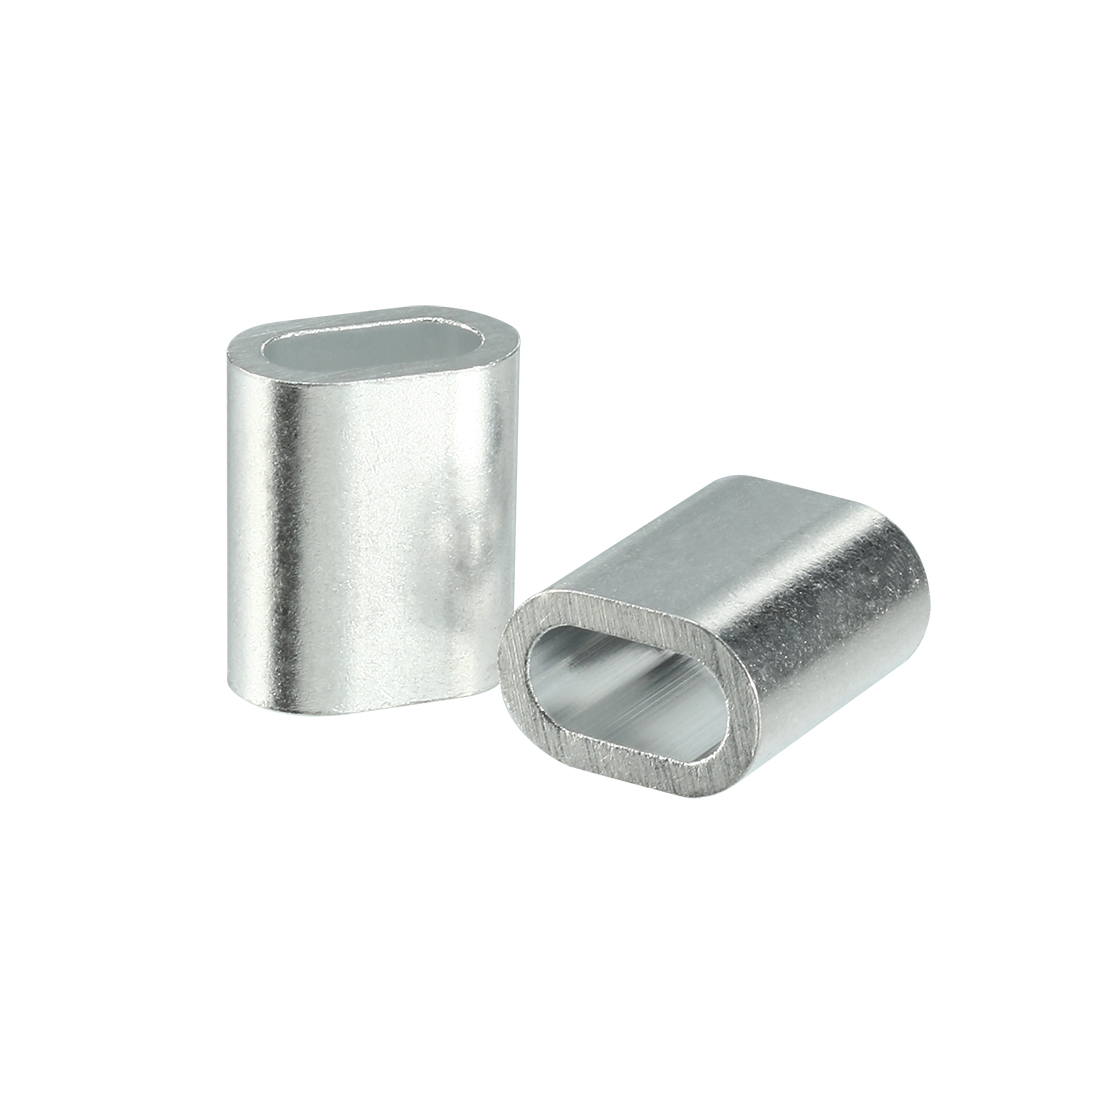 12mm 1/2-inch Cable Wire Rope Aluminum Sleeves Clip Fittings Crimps Loop 4pcs